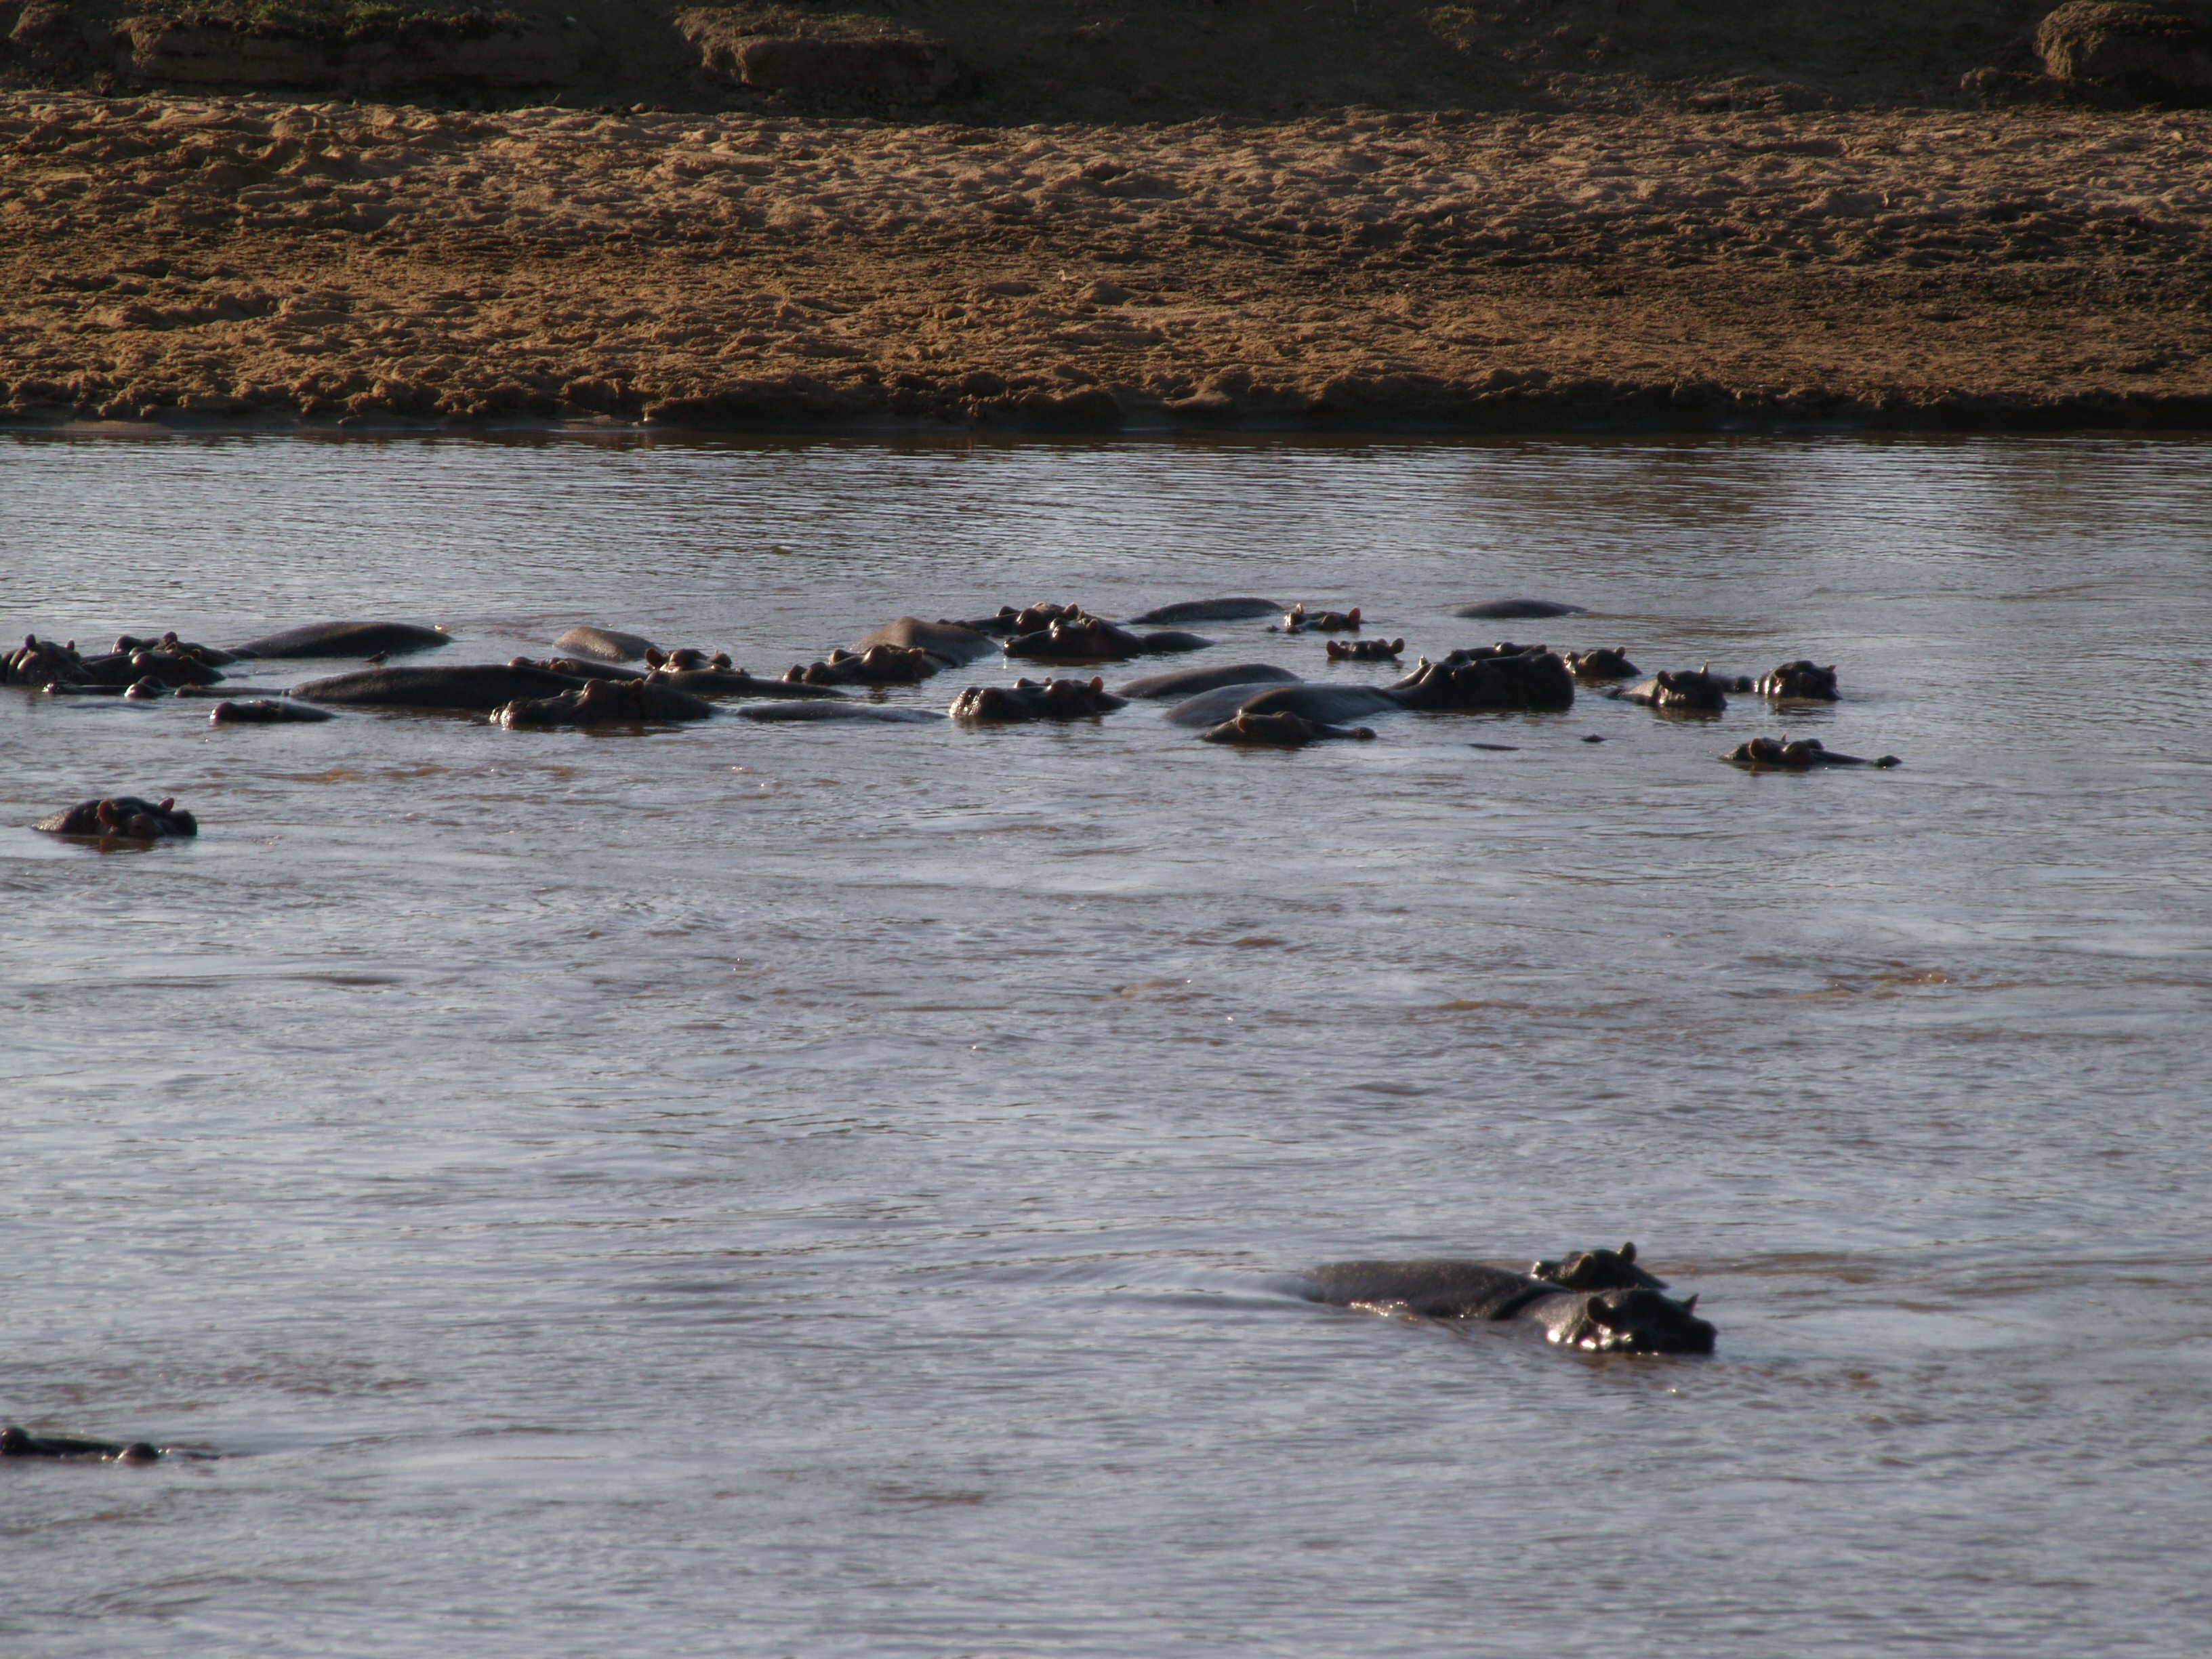 hippos wading in the Mara River